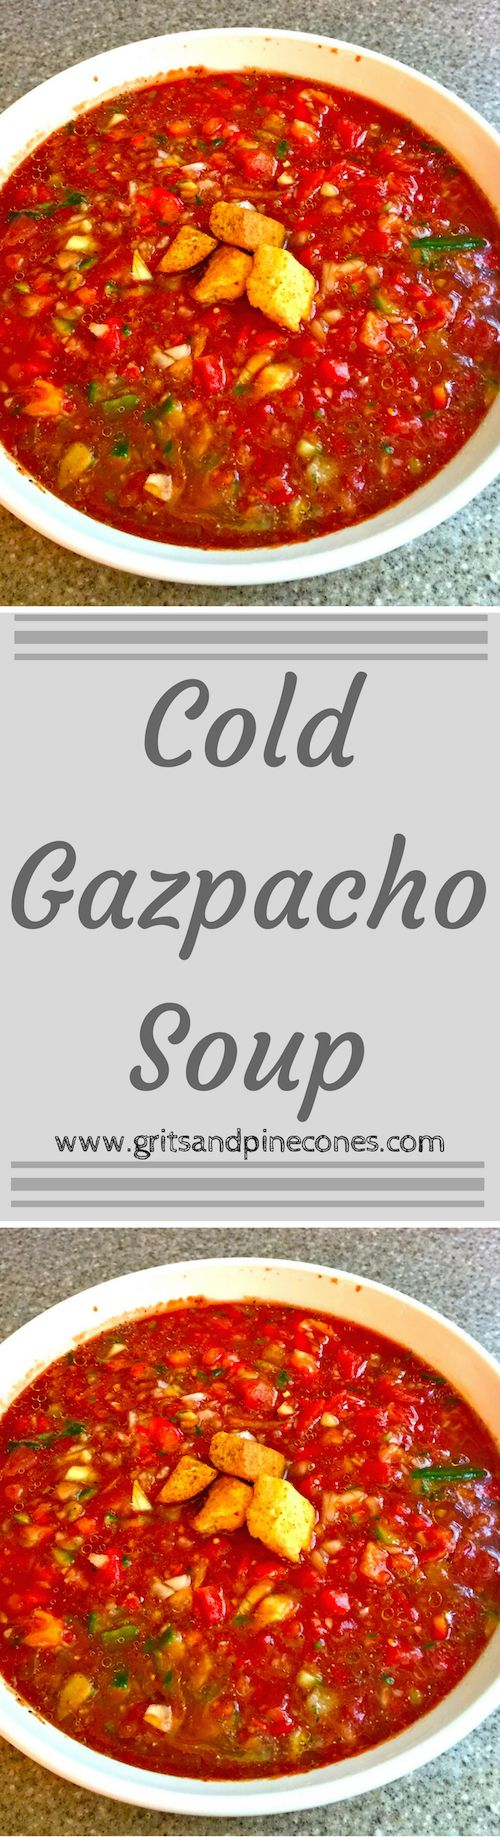 This Gazpacho recipe is quick and easy, and you can have a nutritious meal on…